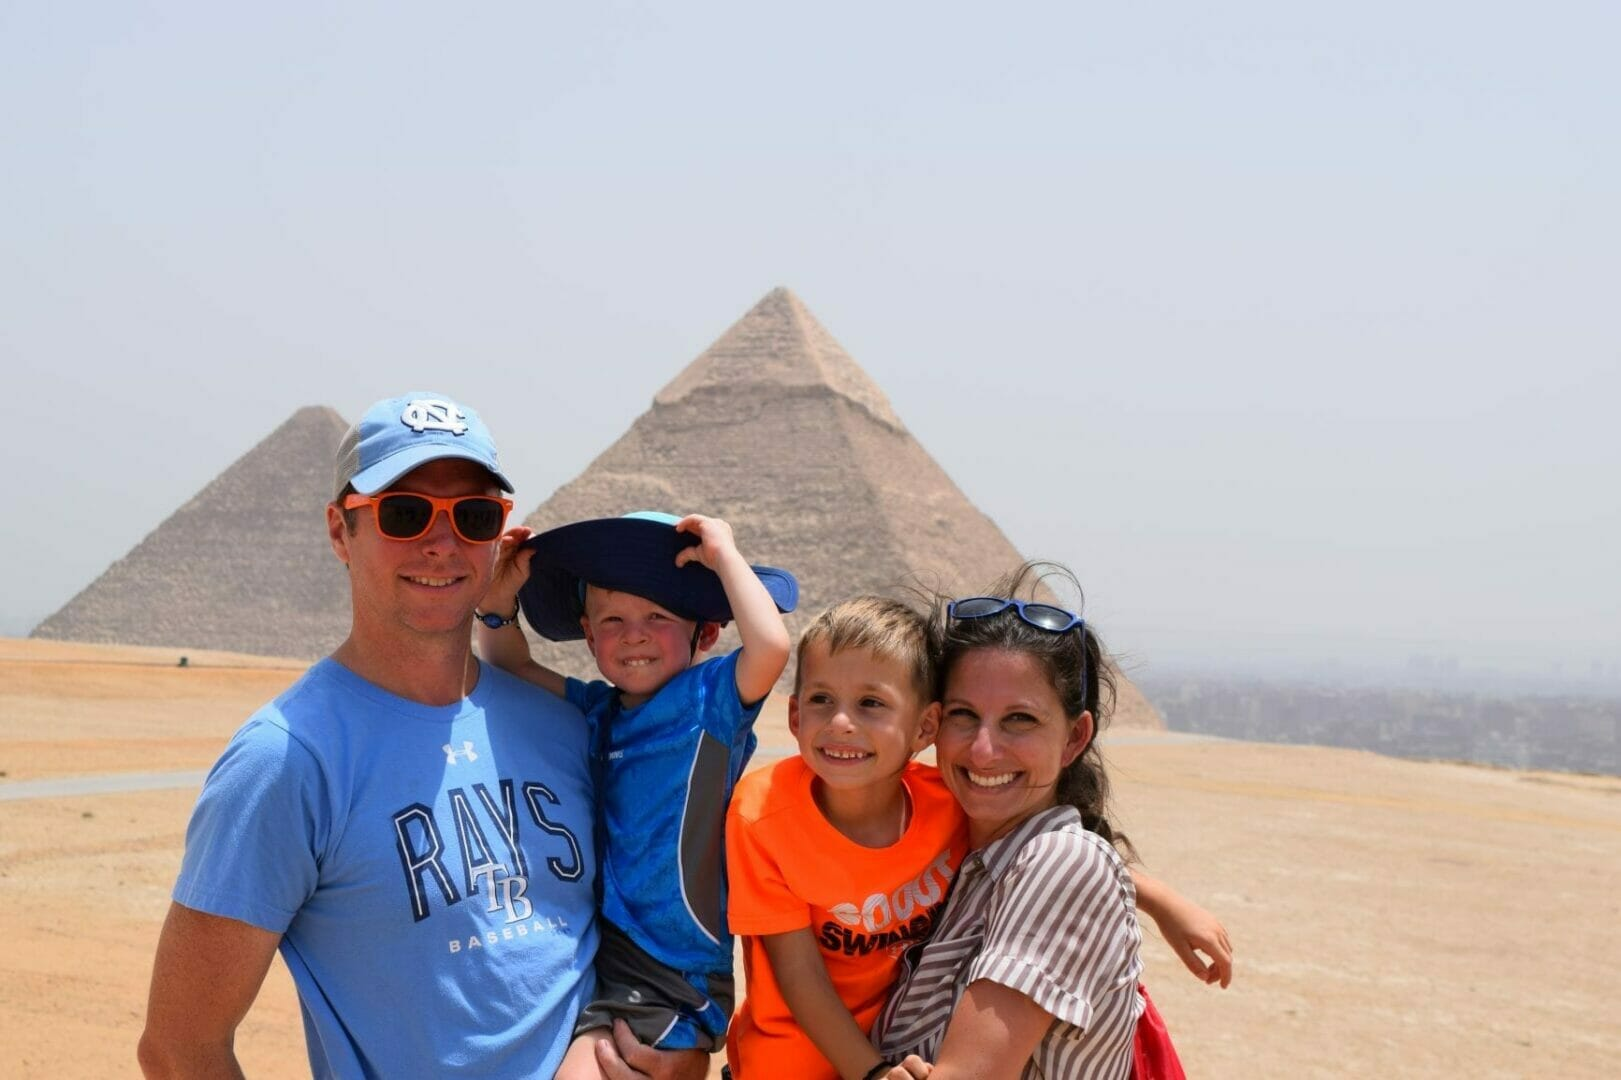 Family Tour at the Pyramids